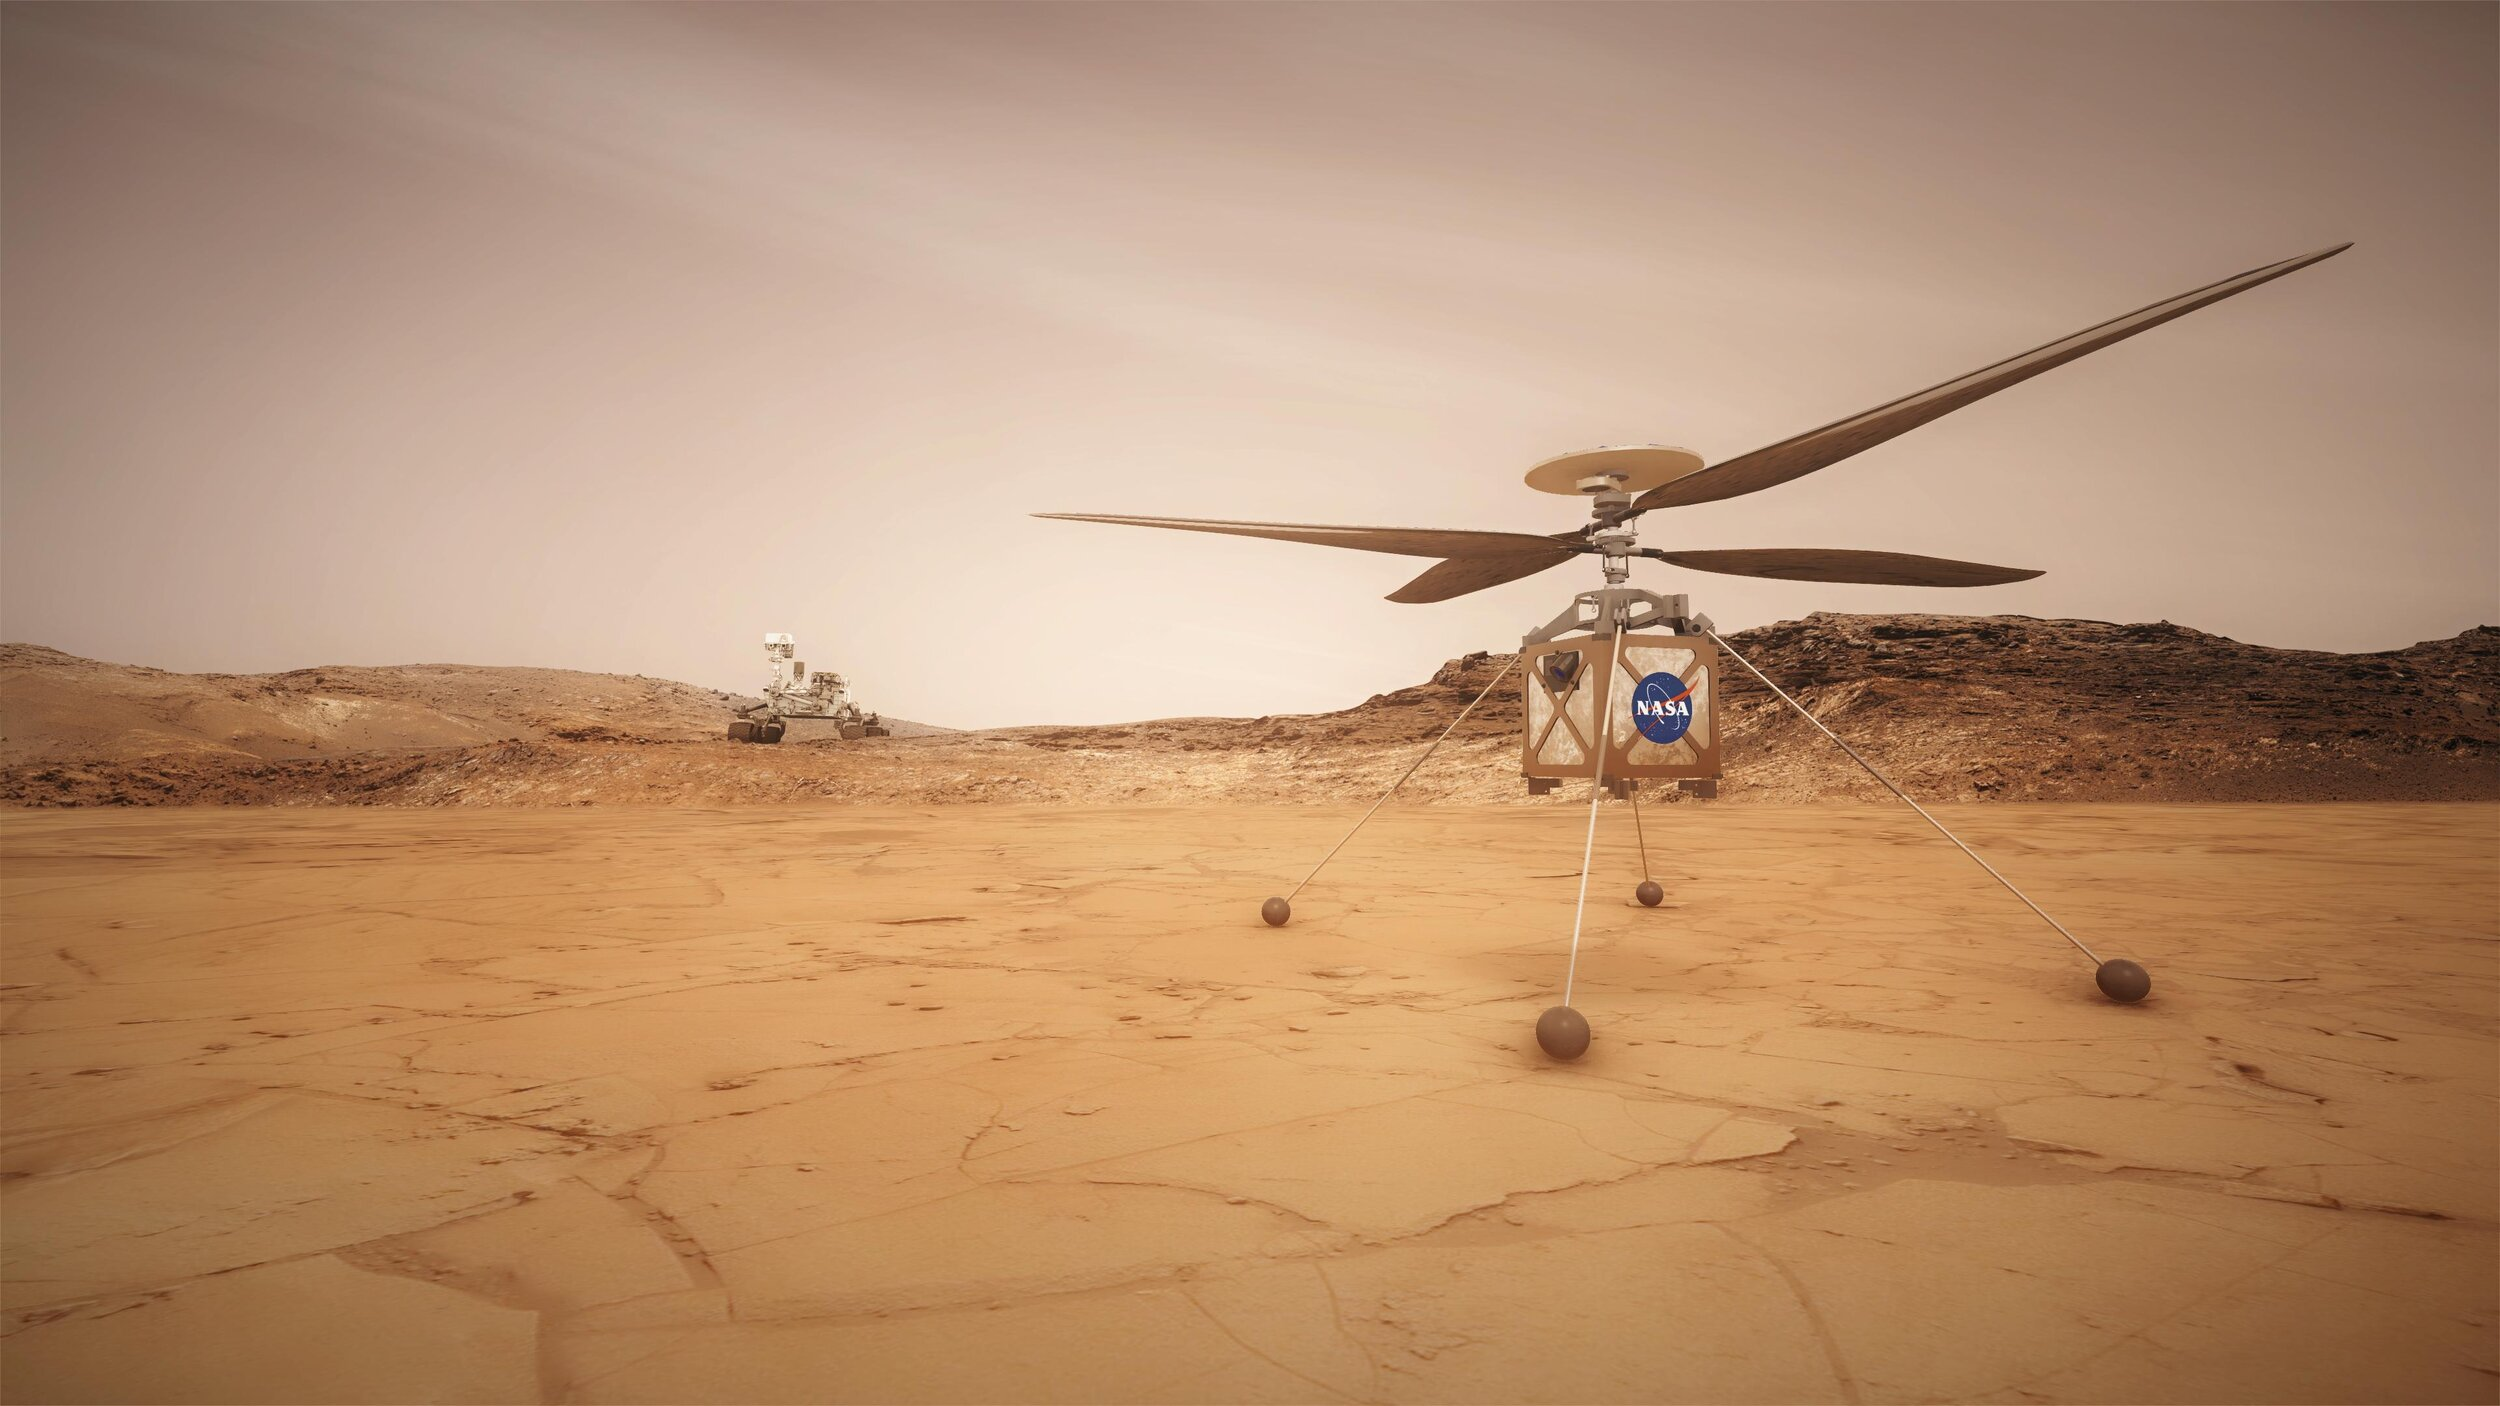 63: There is a Mars Helicopter, the first powered flying device being sent to another planet, in a lab in Pasadena. Flying it on Mars will be like flying a helicopter at 100,000 feet on Earth. 40,000 feet is the record for a helicopter flight on Earth.  https://www.youtube.com/watch?v=GhsZUZmJvaM